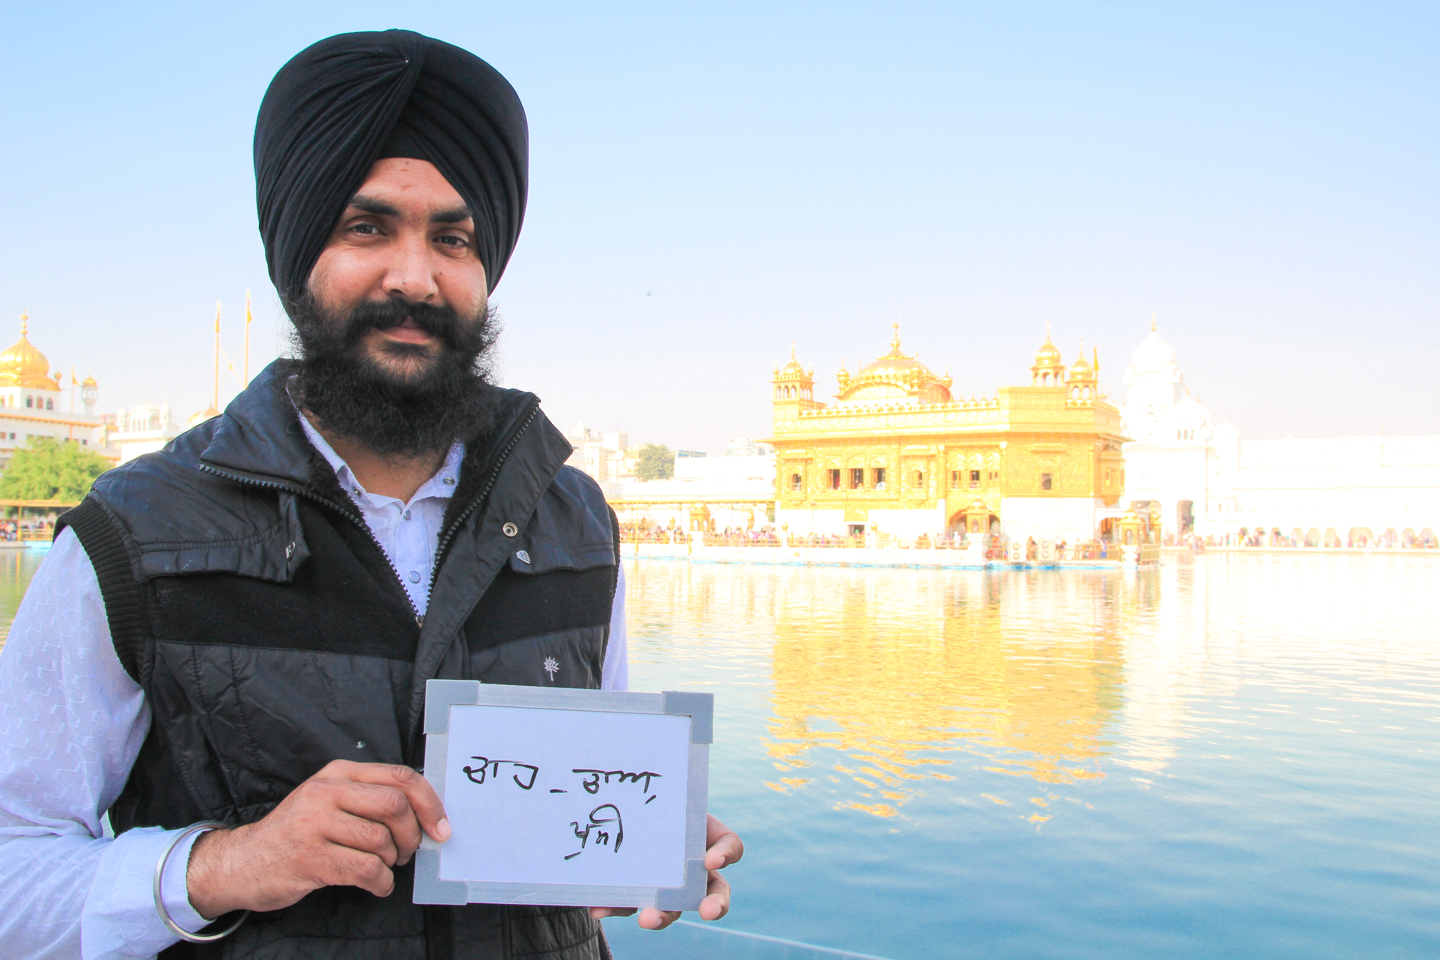 Mandeep Singh wrote 'Cha da chah,' a Punjabi play on words meaning 'tea of my desire.' Mandeep has been playing the harmonium at the Golden Temple, the Sikh religion's holiest site, for five years. 'We sing Guru Gobind Singh's words.'